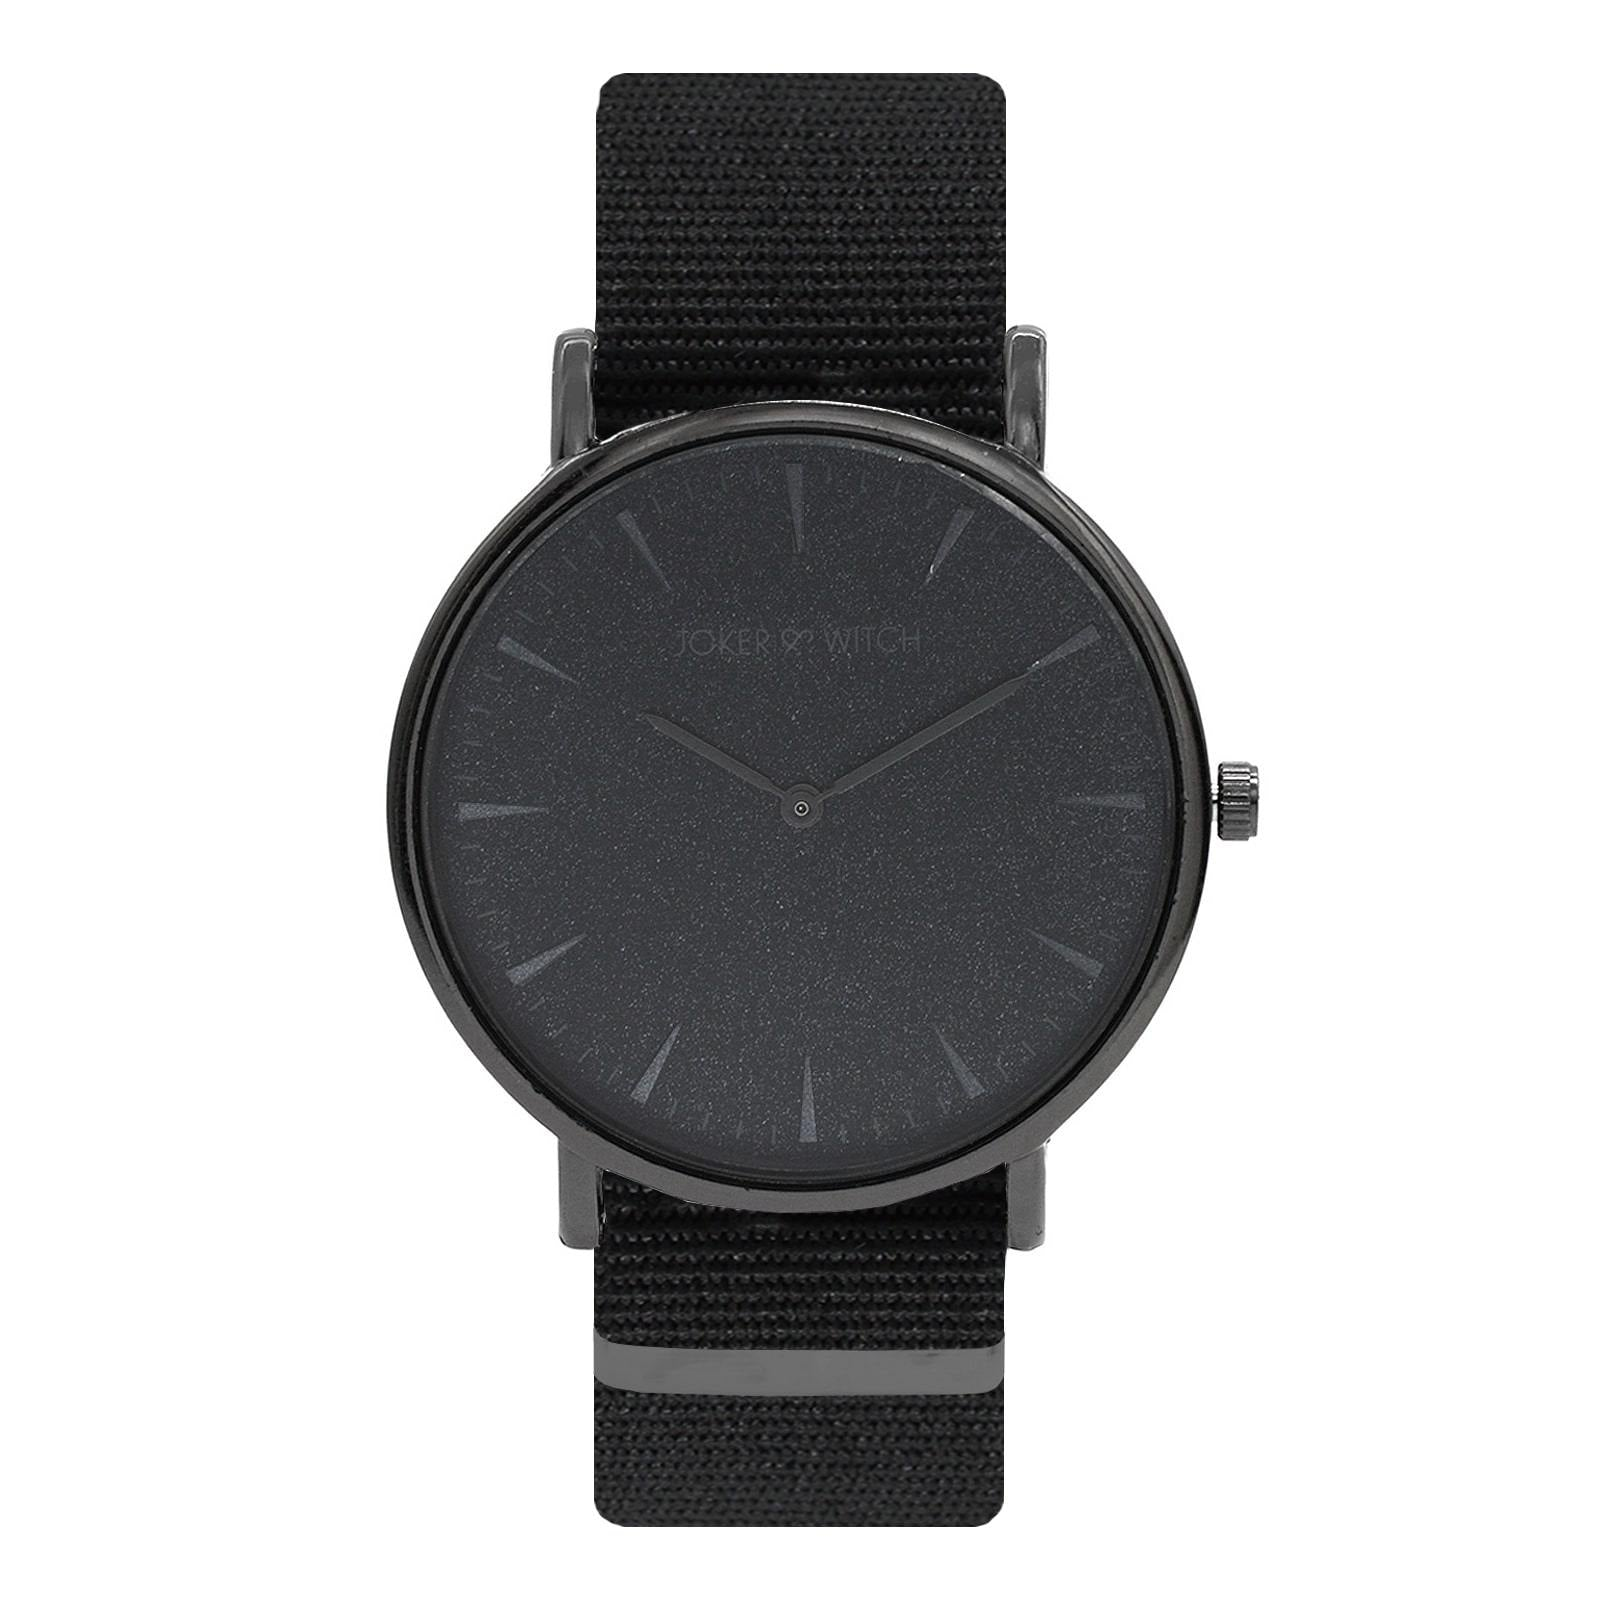 Phile Black Dial Nato Watch - Joker & Witch